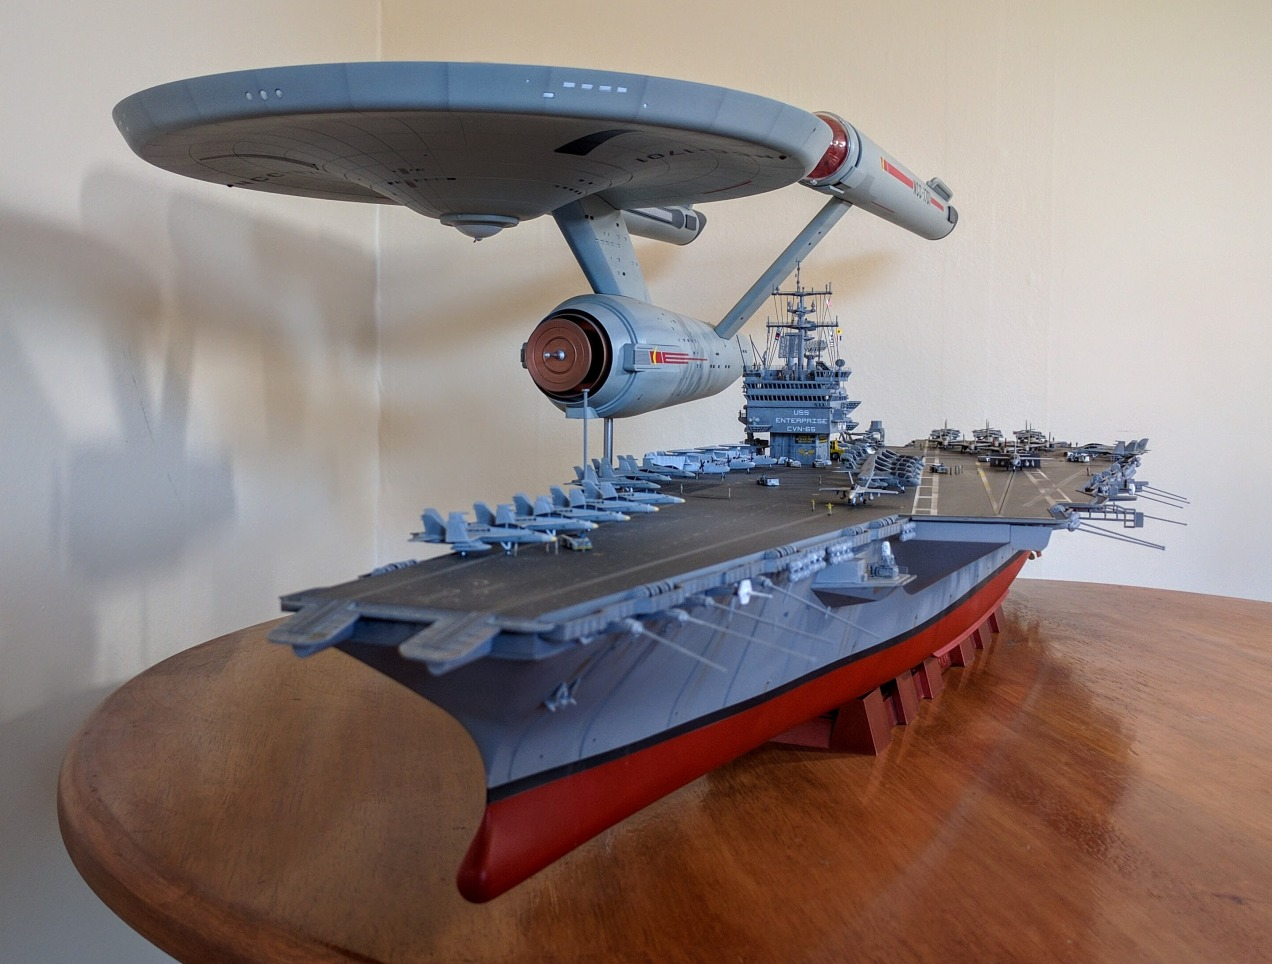 Scale Enterprise models